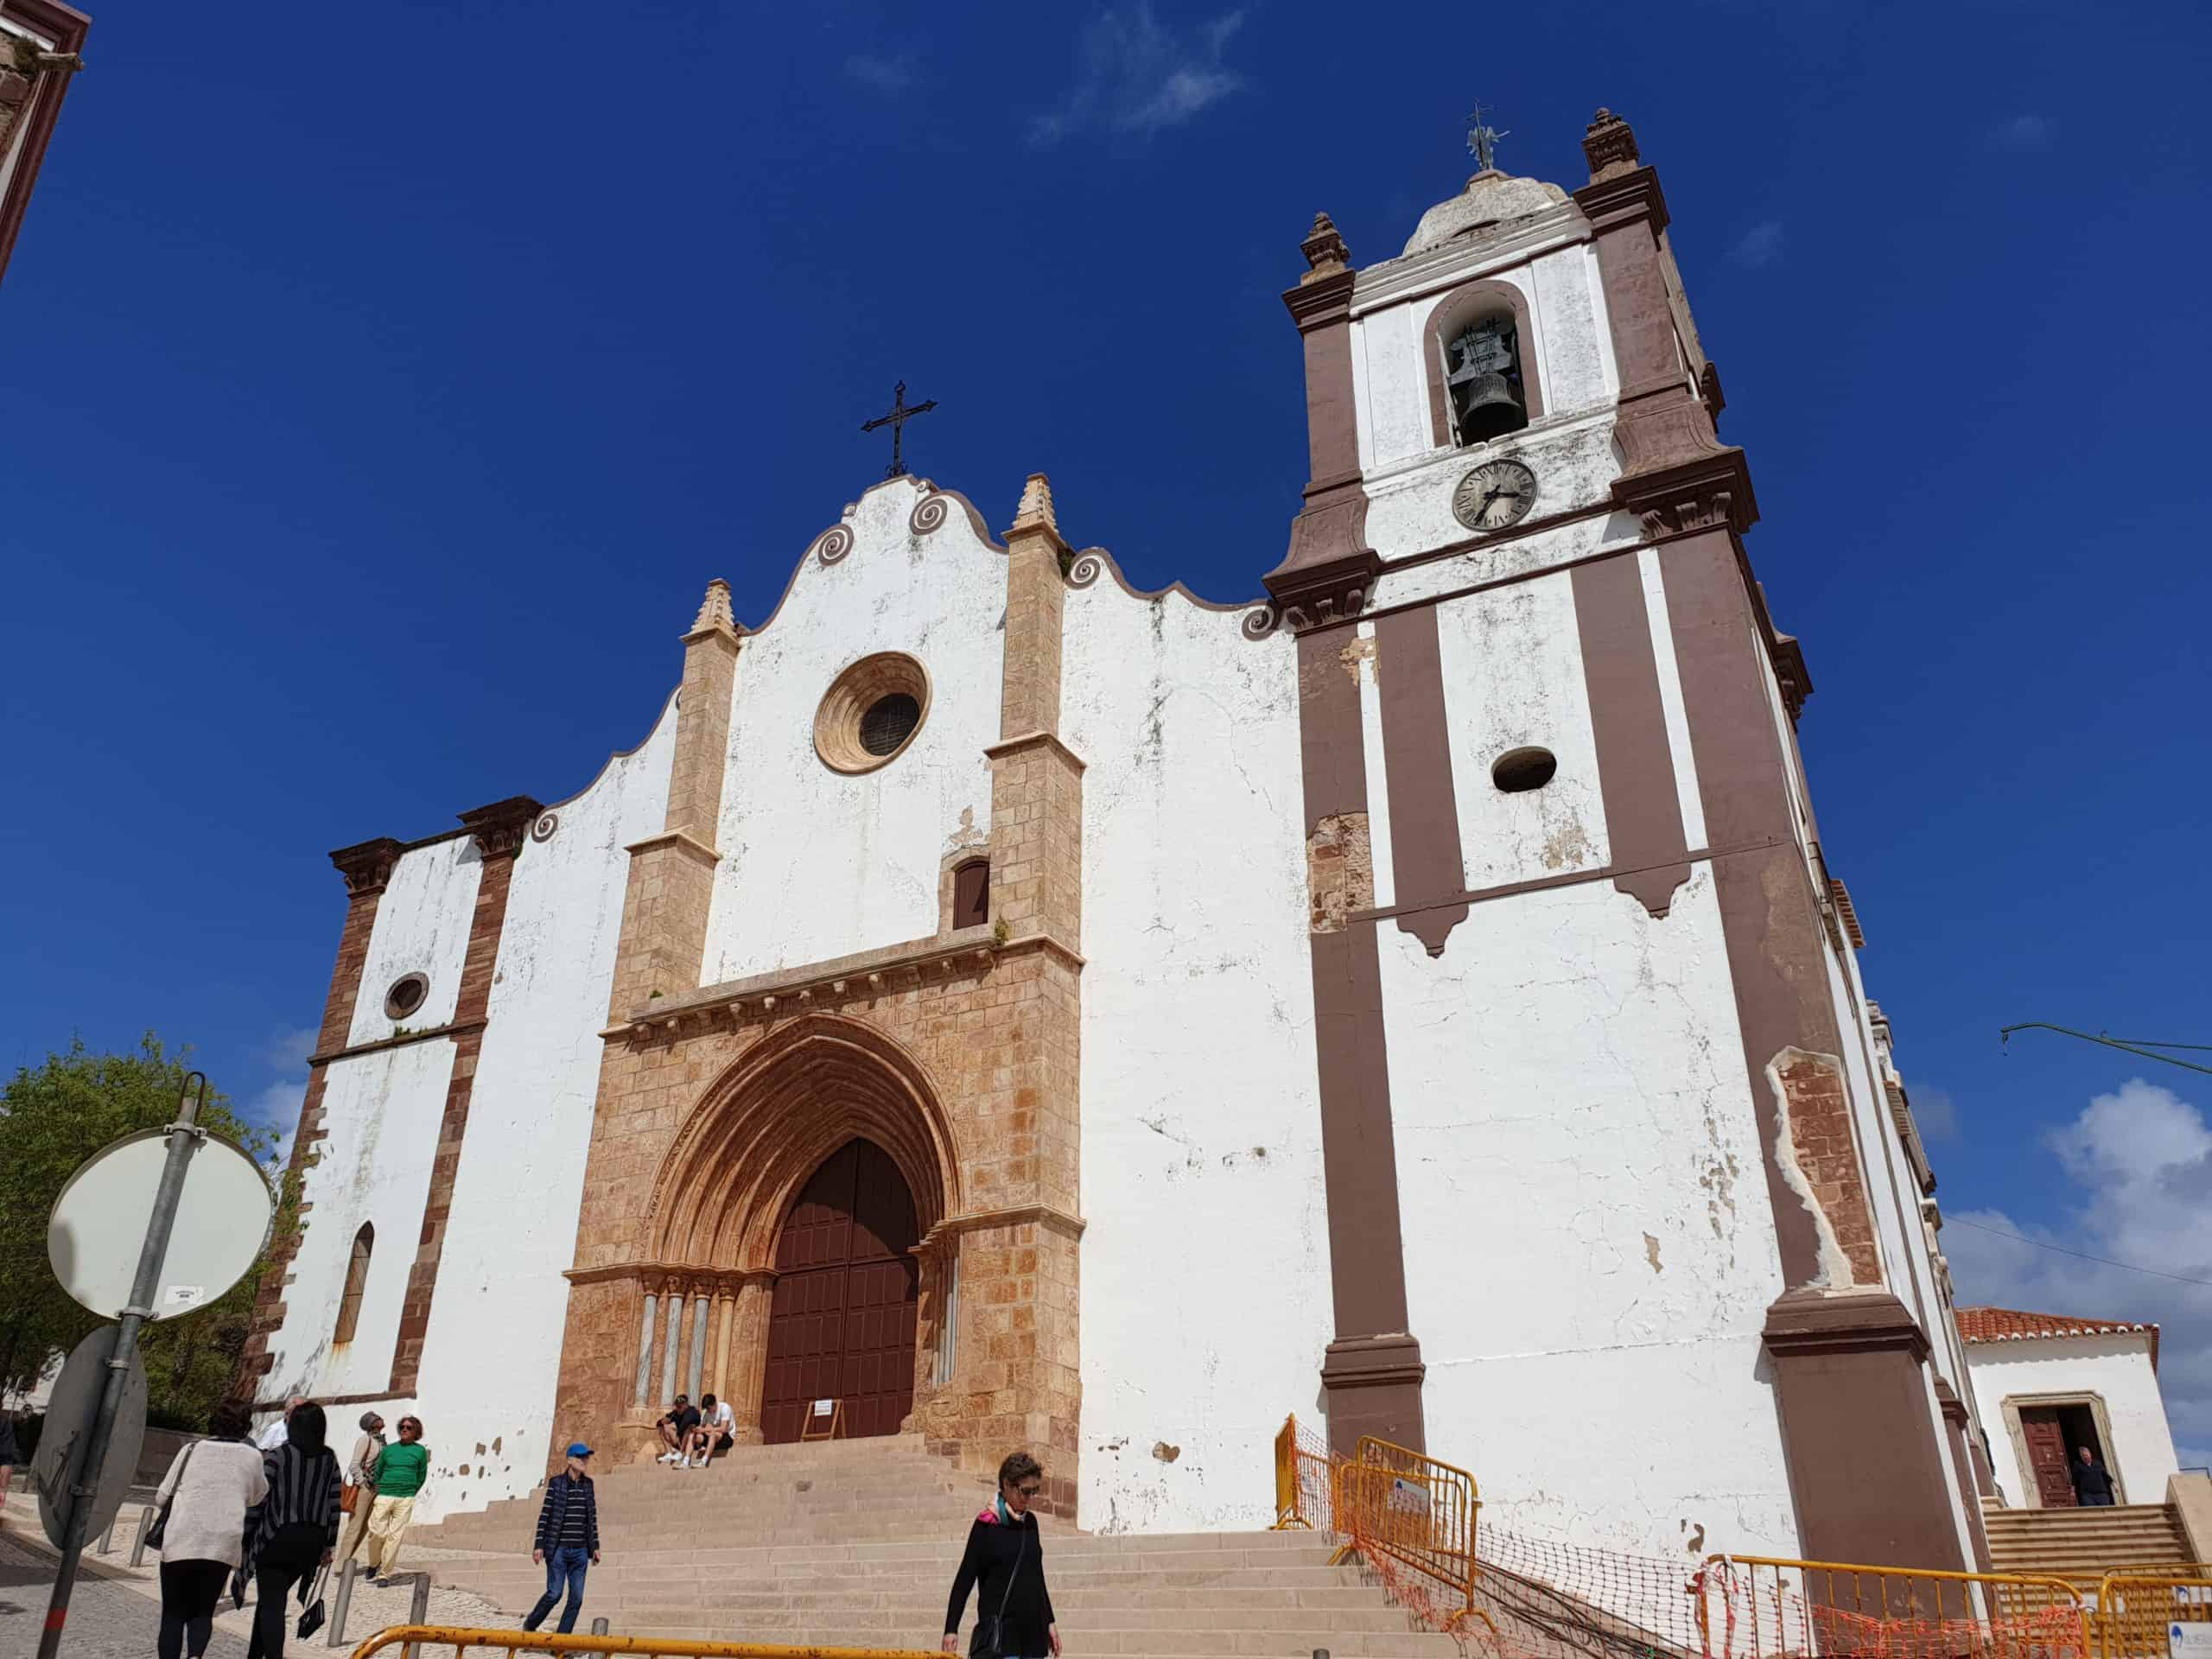 The front of the Cathedral of Silves